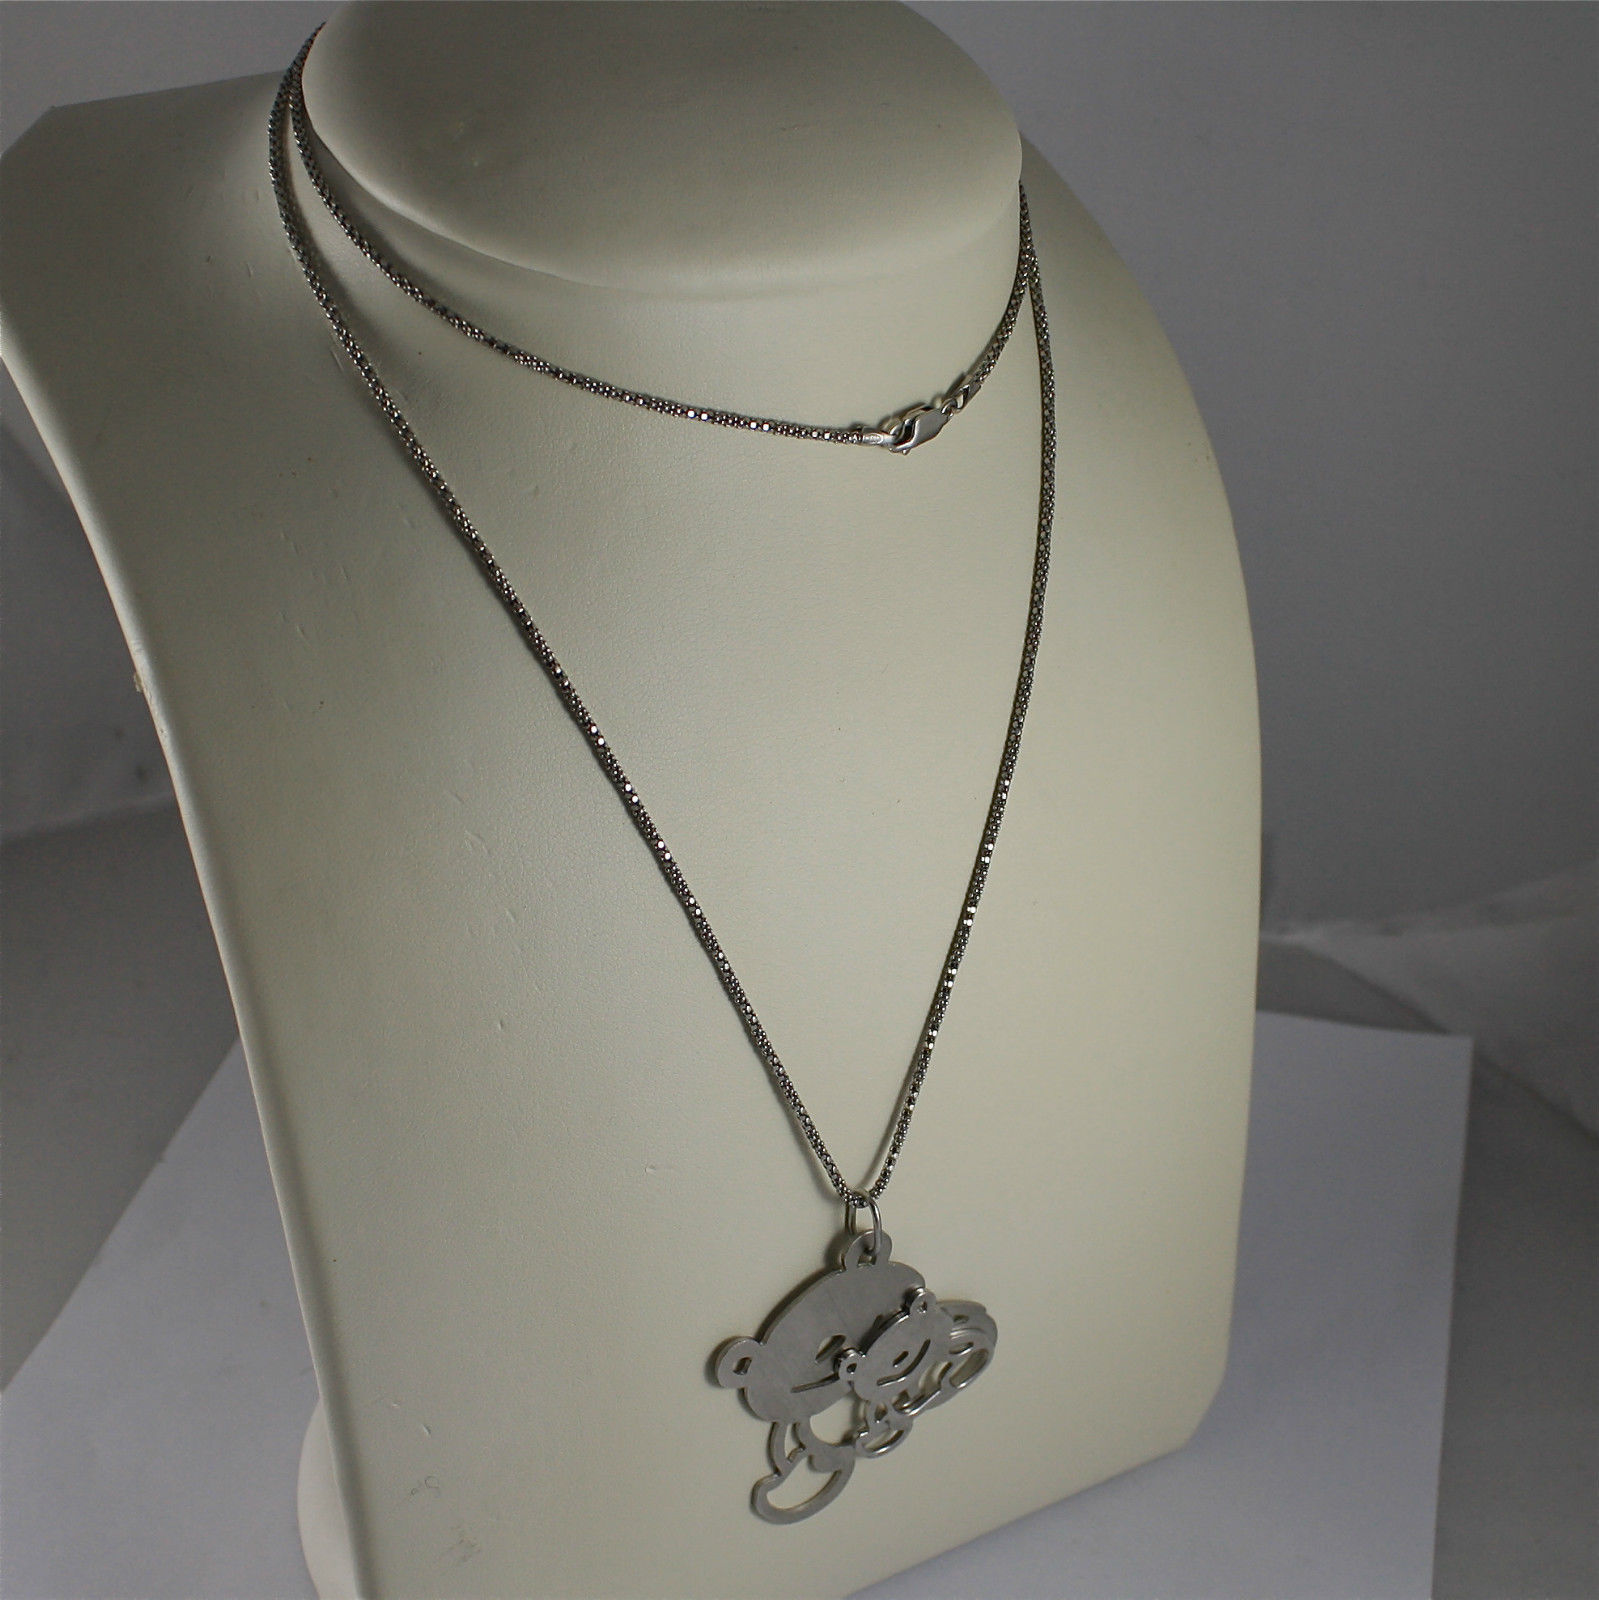 .925 RHODIUM SILVER NECKLACE, BASKET BRIGHT MESH, TWO CARE BEARS PENDANT.